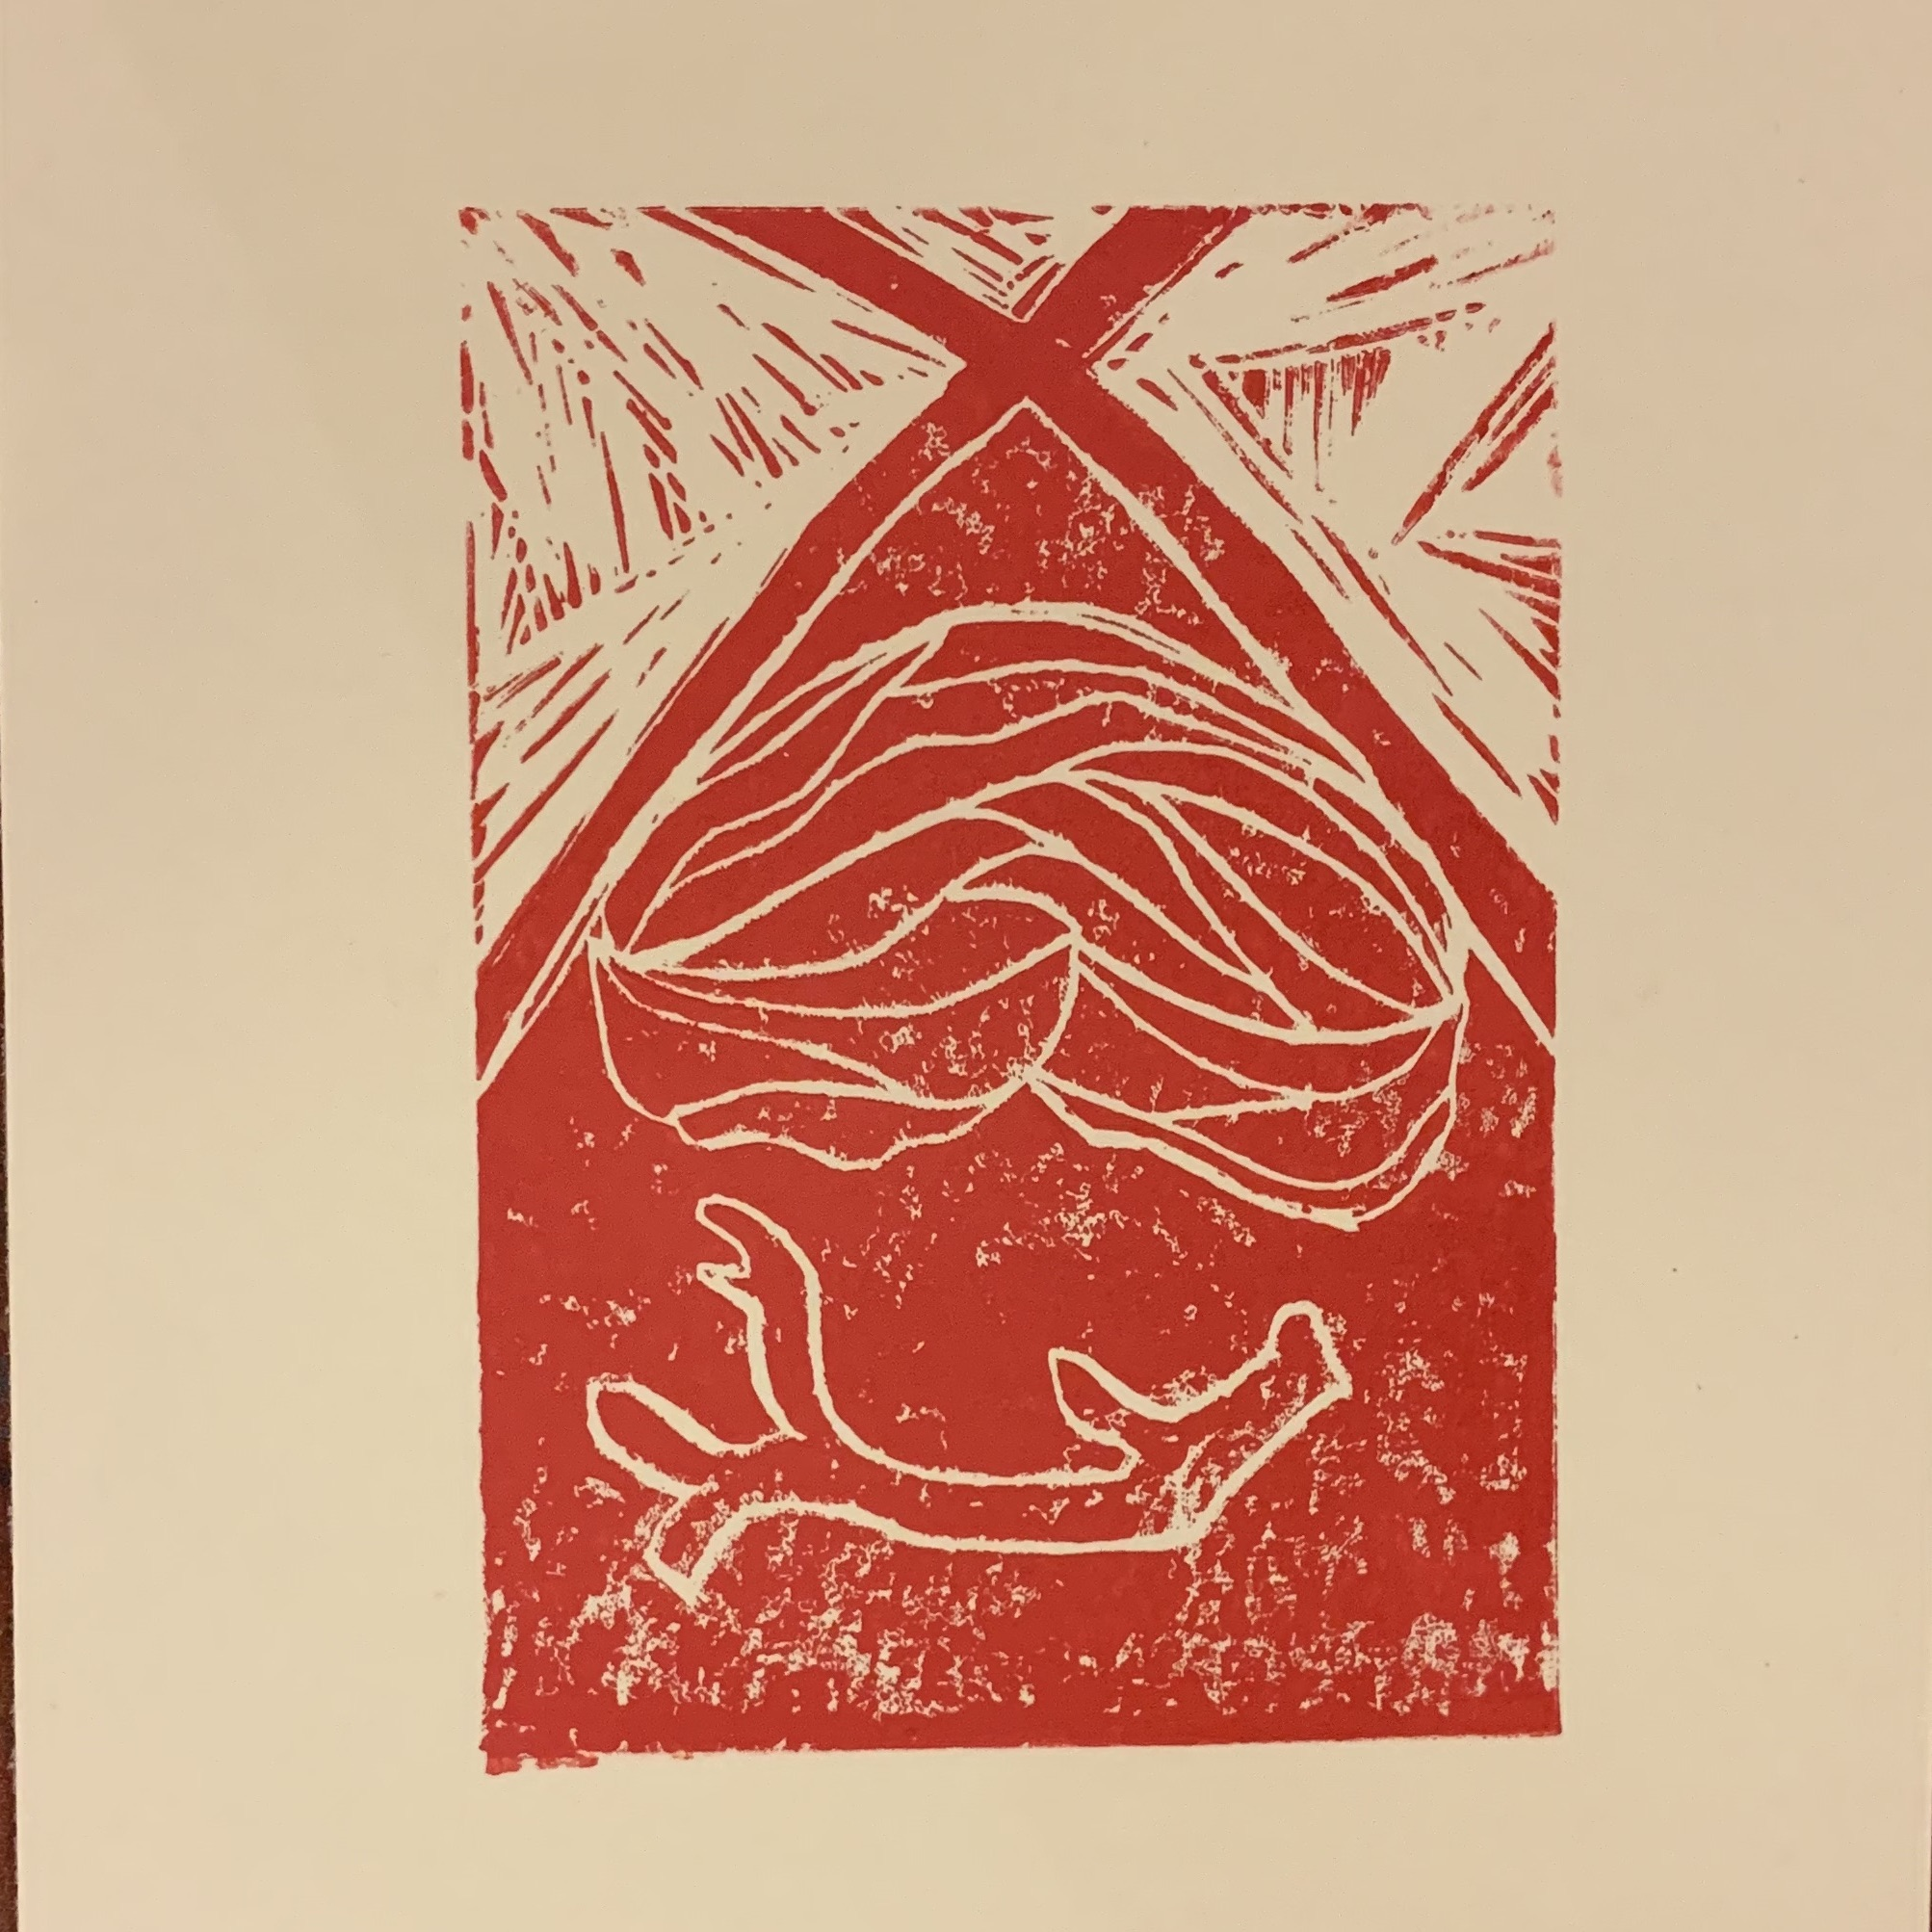 Linocuts and prints made from the last Exchange group